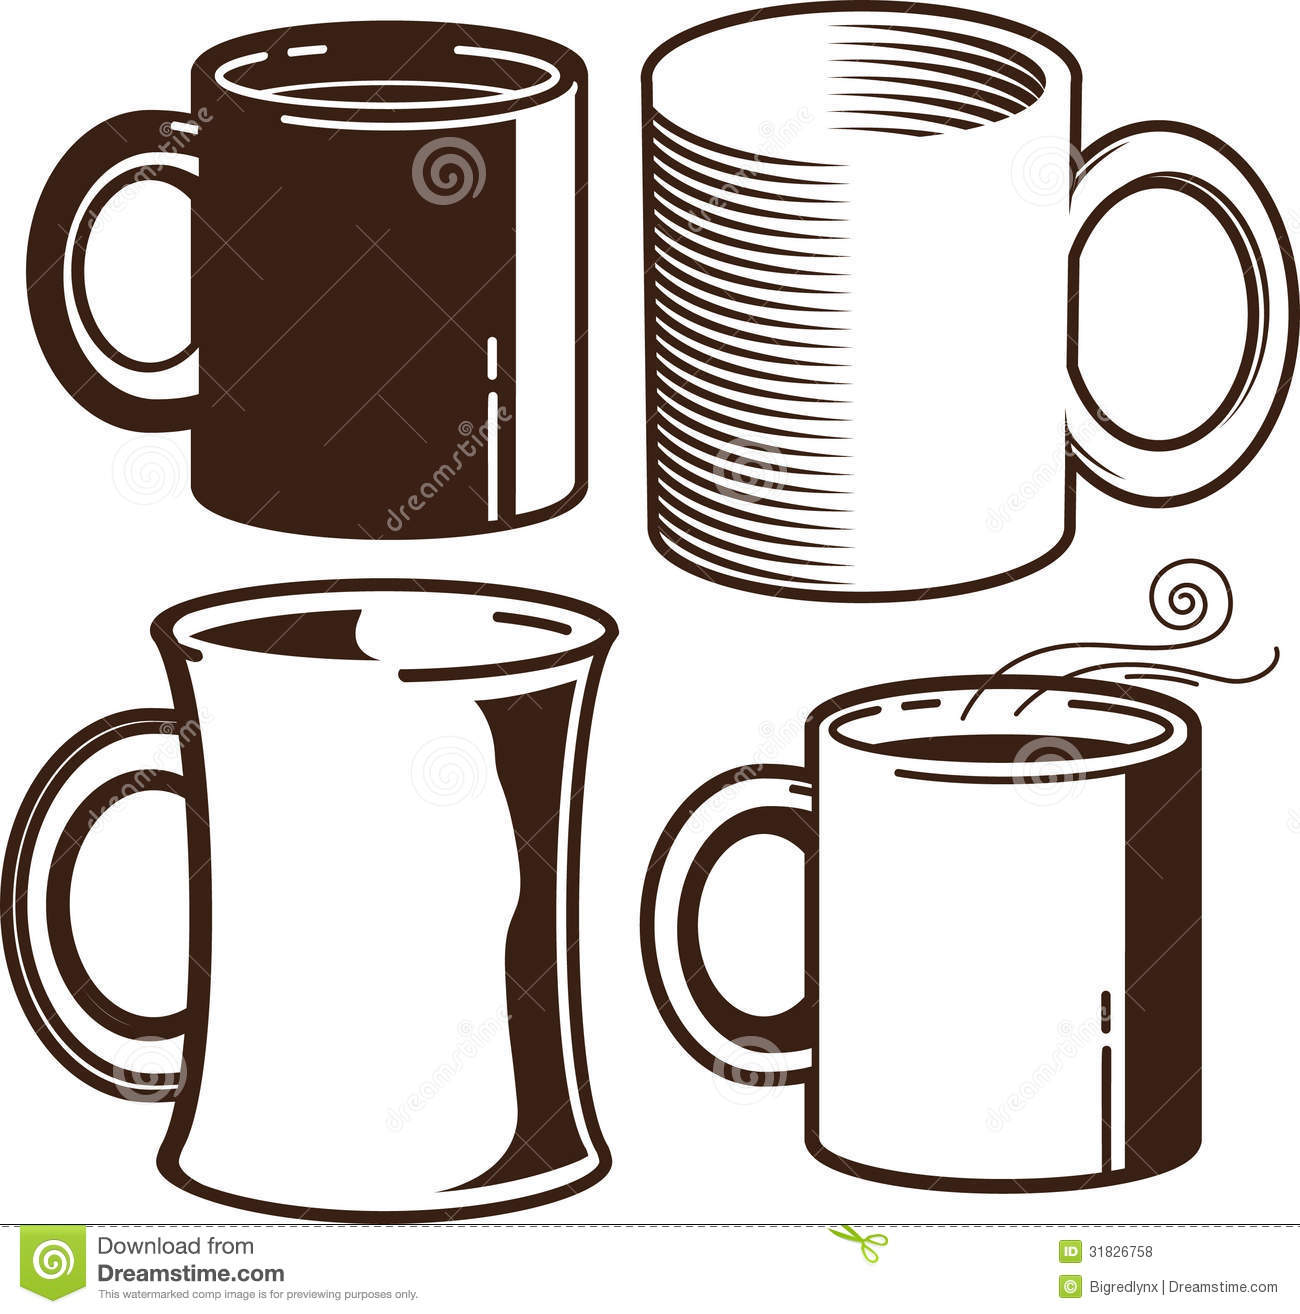 Coffee mug clipart.